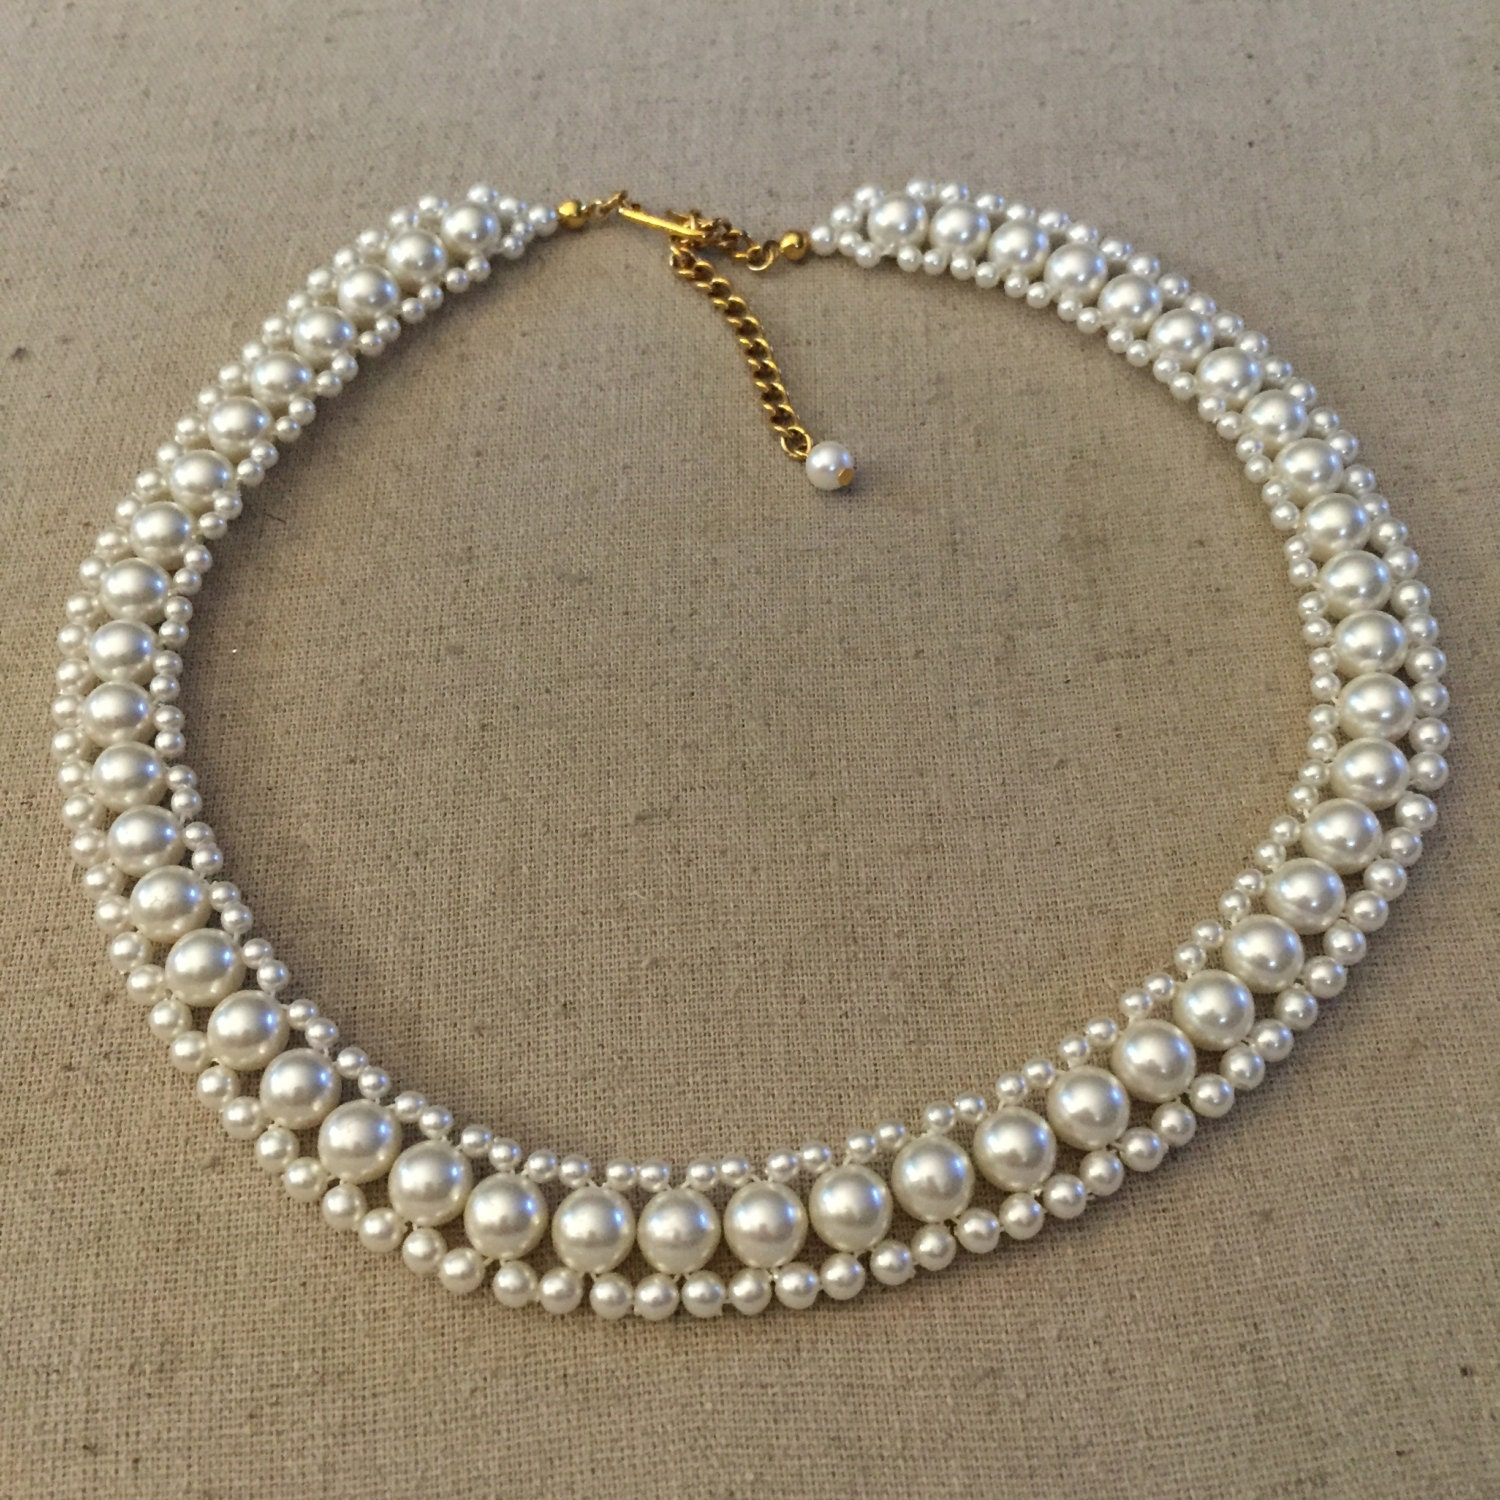 Vintage Pearl Choker Necklace: Vintage Faux Pearl Necklace Choker